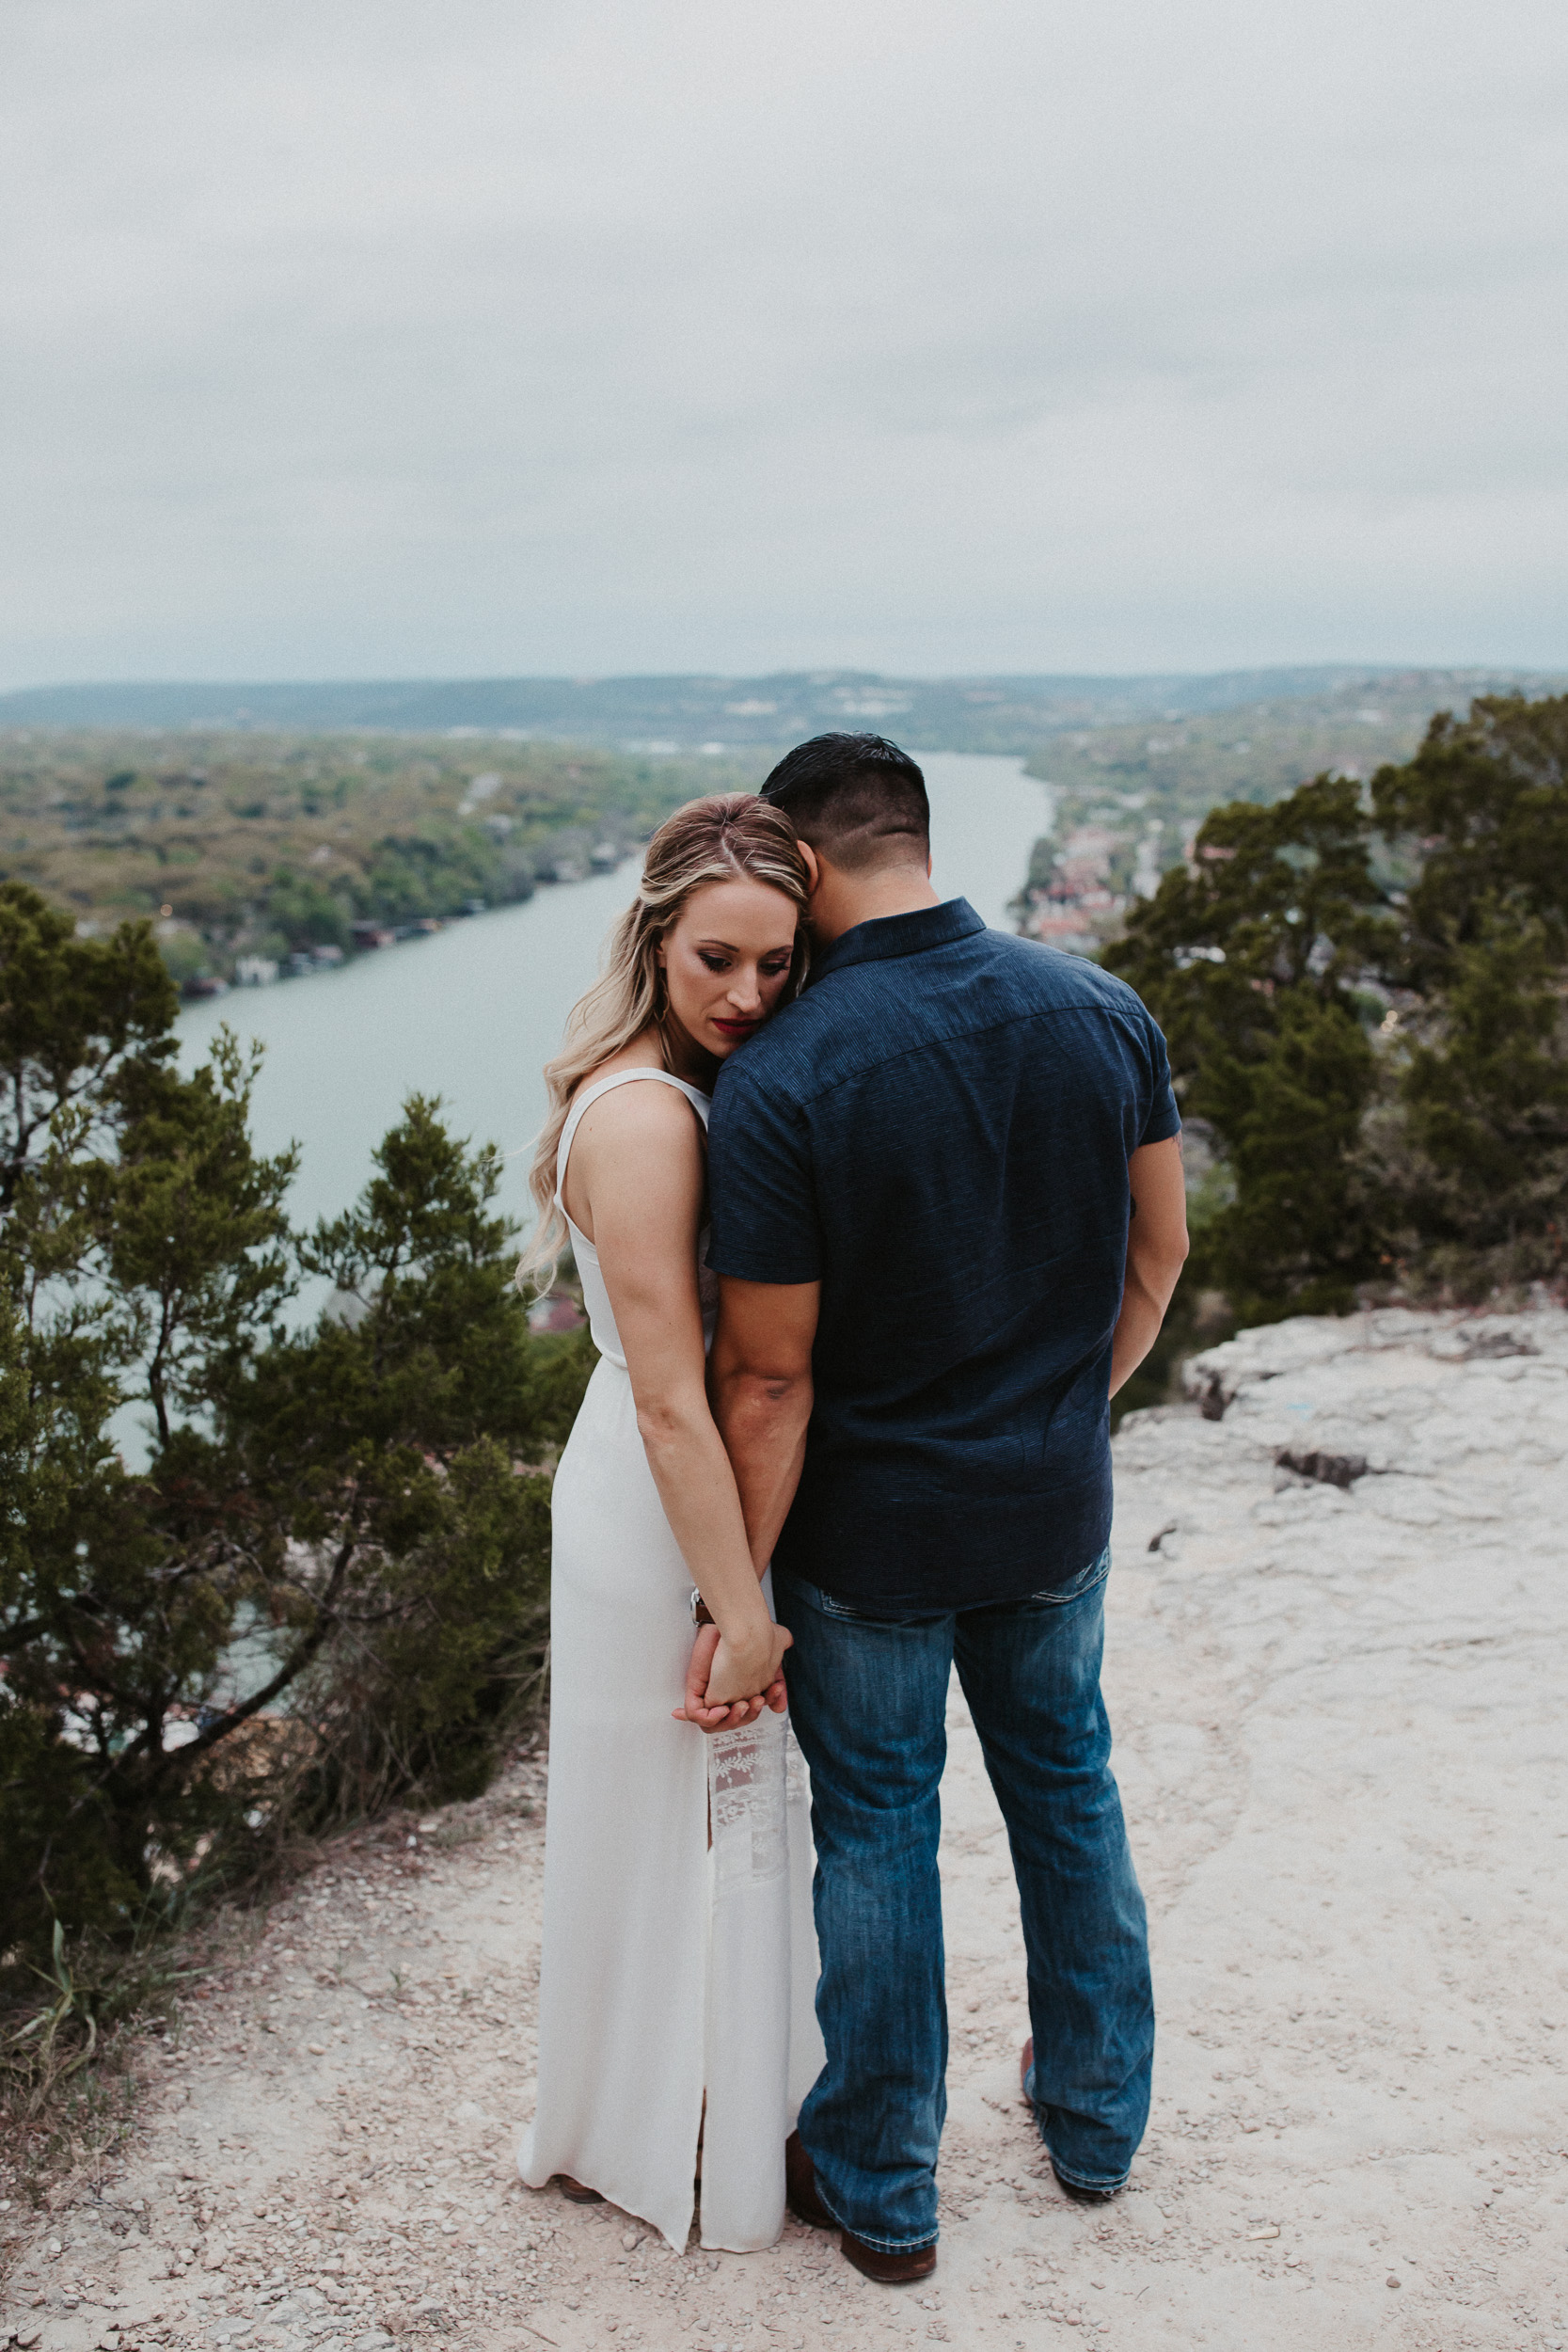 liz-stephen-engagement-mount-bonnell-austin-texas-023.jpg